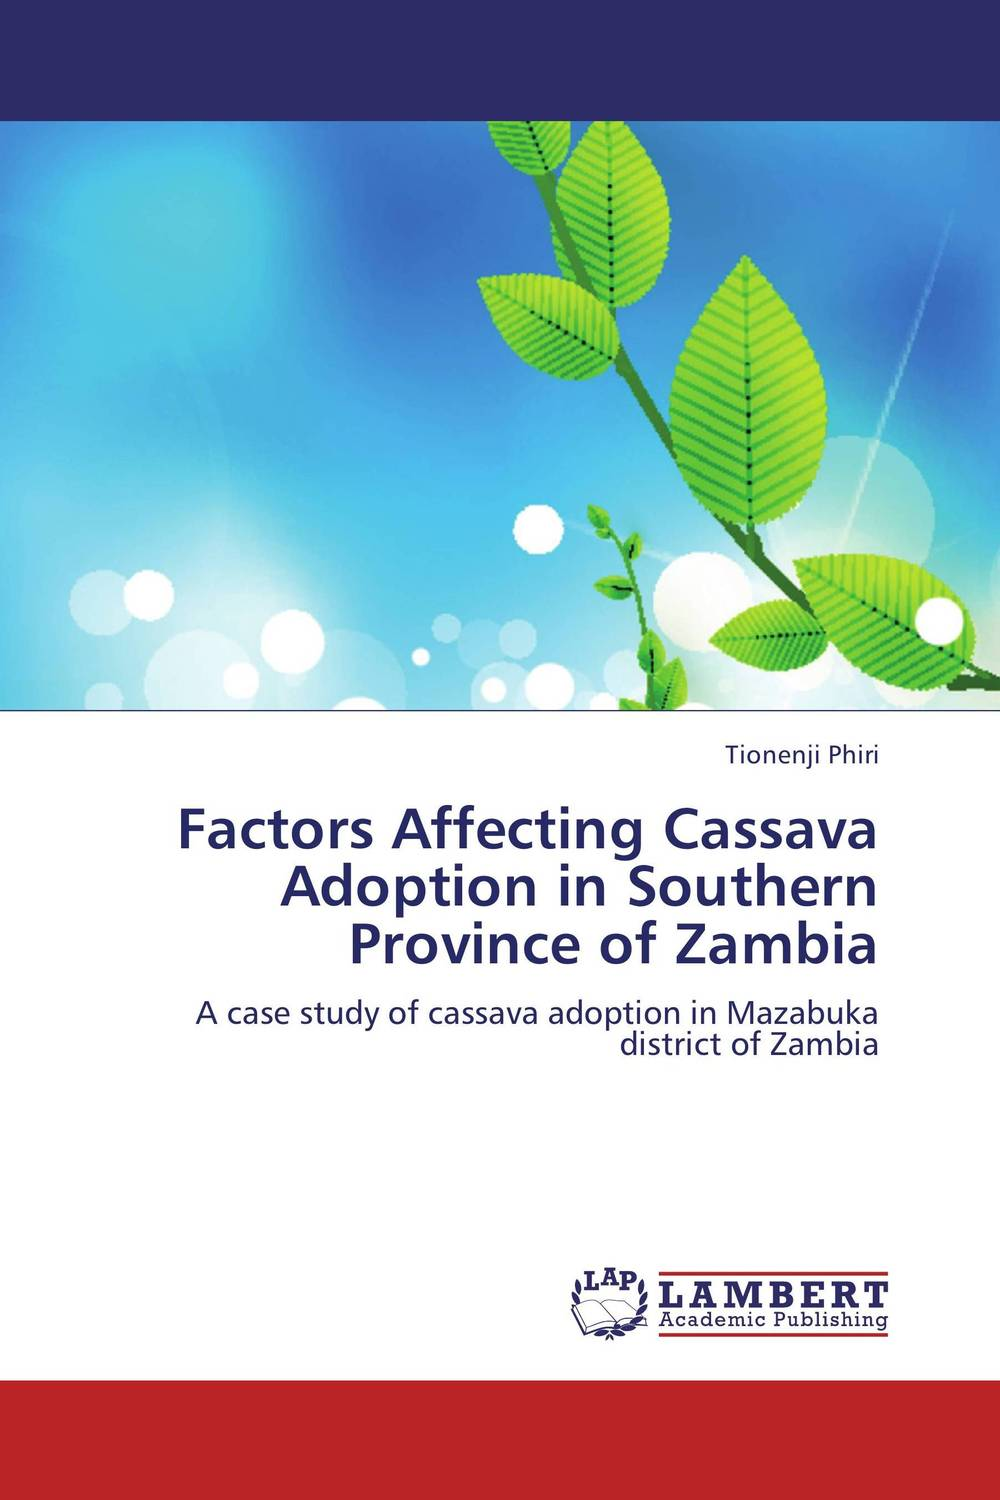 Factors Affecting Cassava Adoption in Southern Province of Zambia детская футболка классическая унисекс printio india i флаг мсс eng